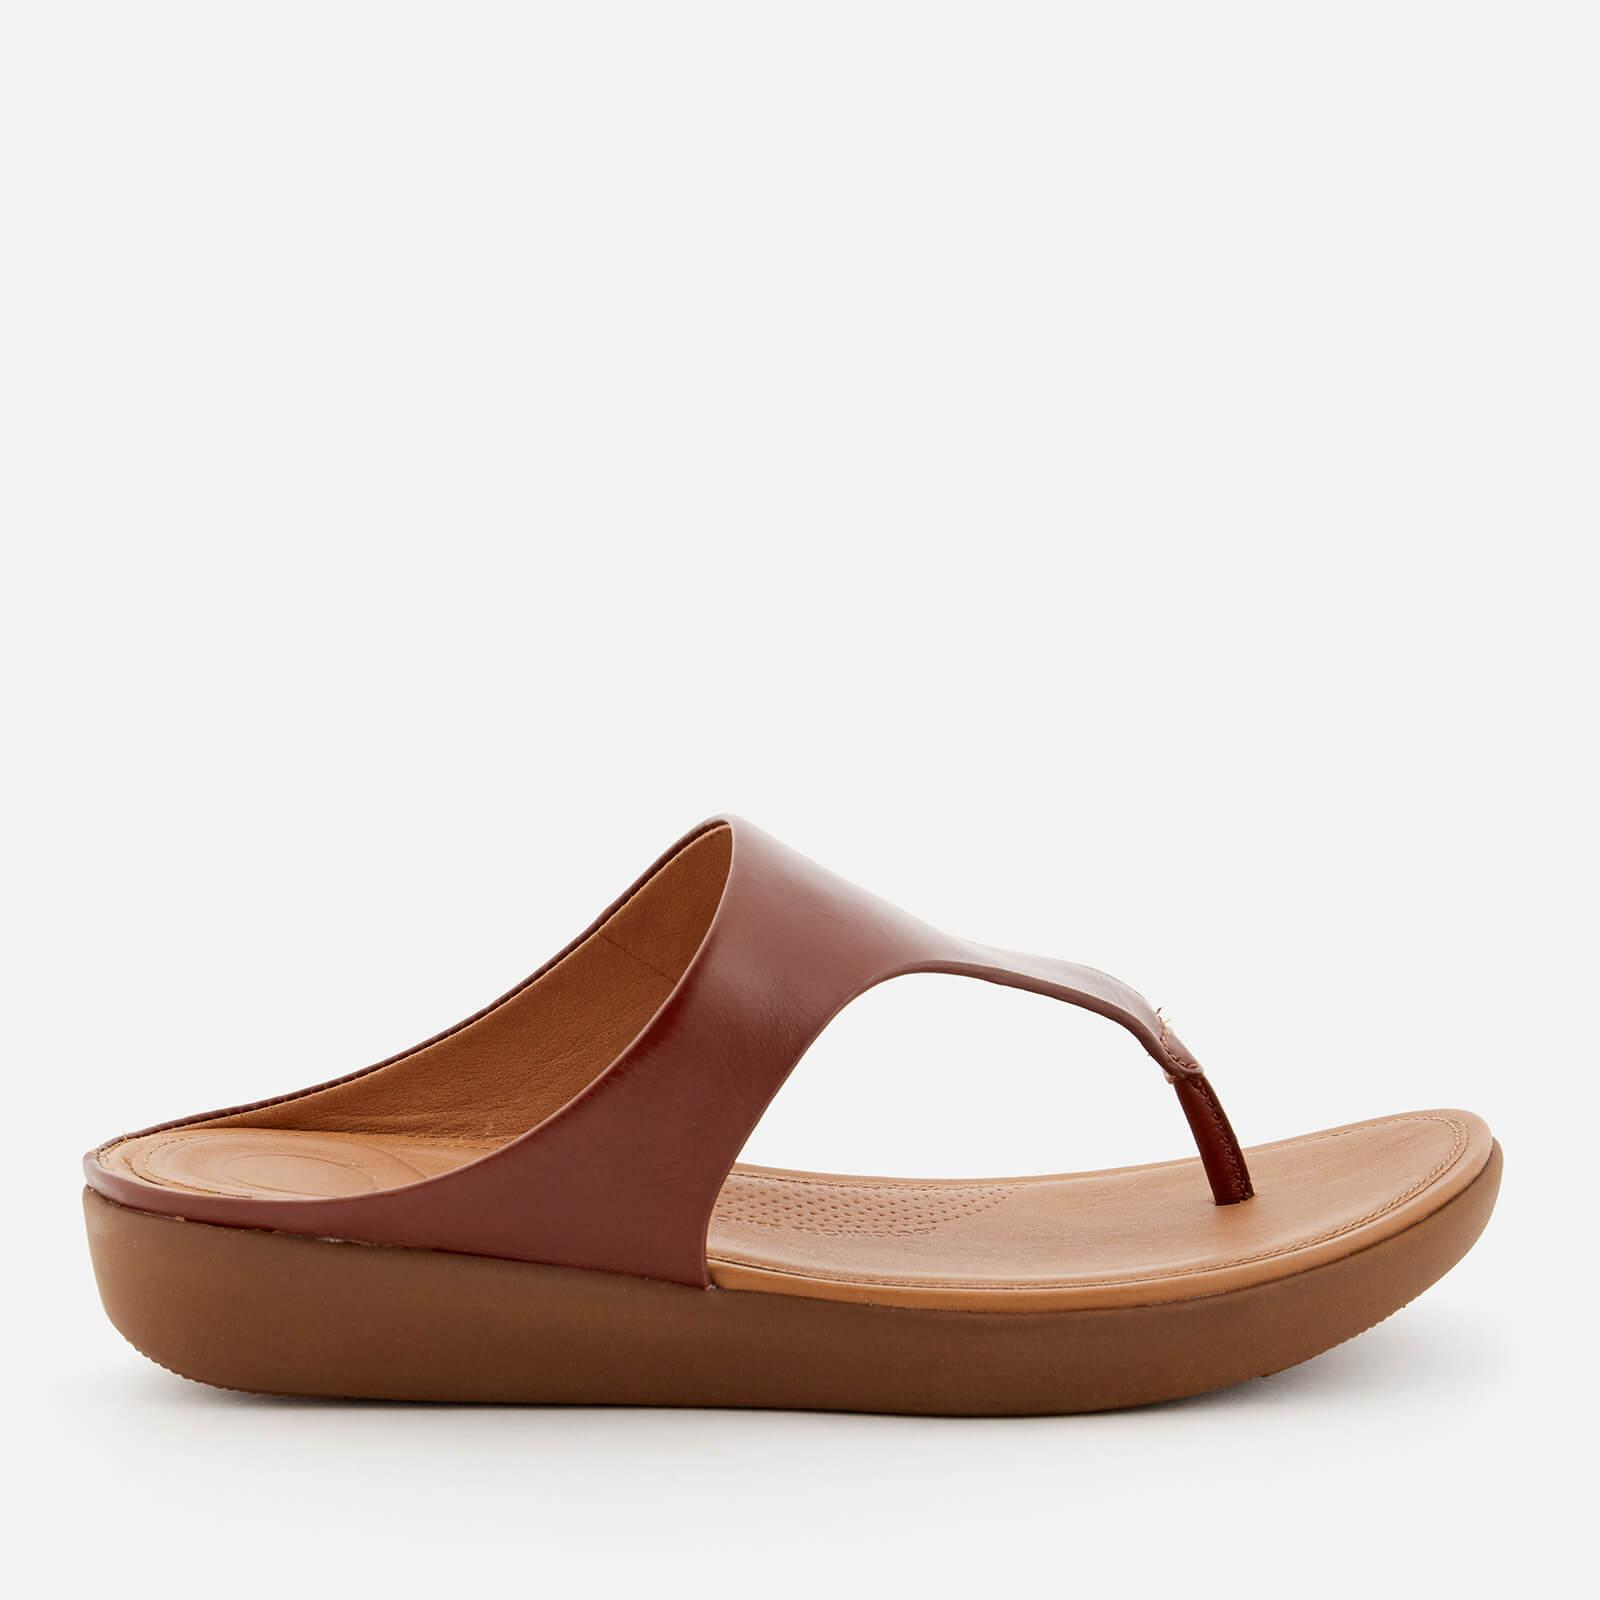 c63327f0f193e Fitflop Banda Ii Leather Toe Post Sandals in Brown - Lyst